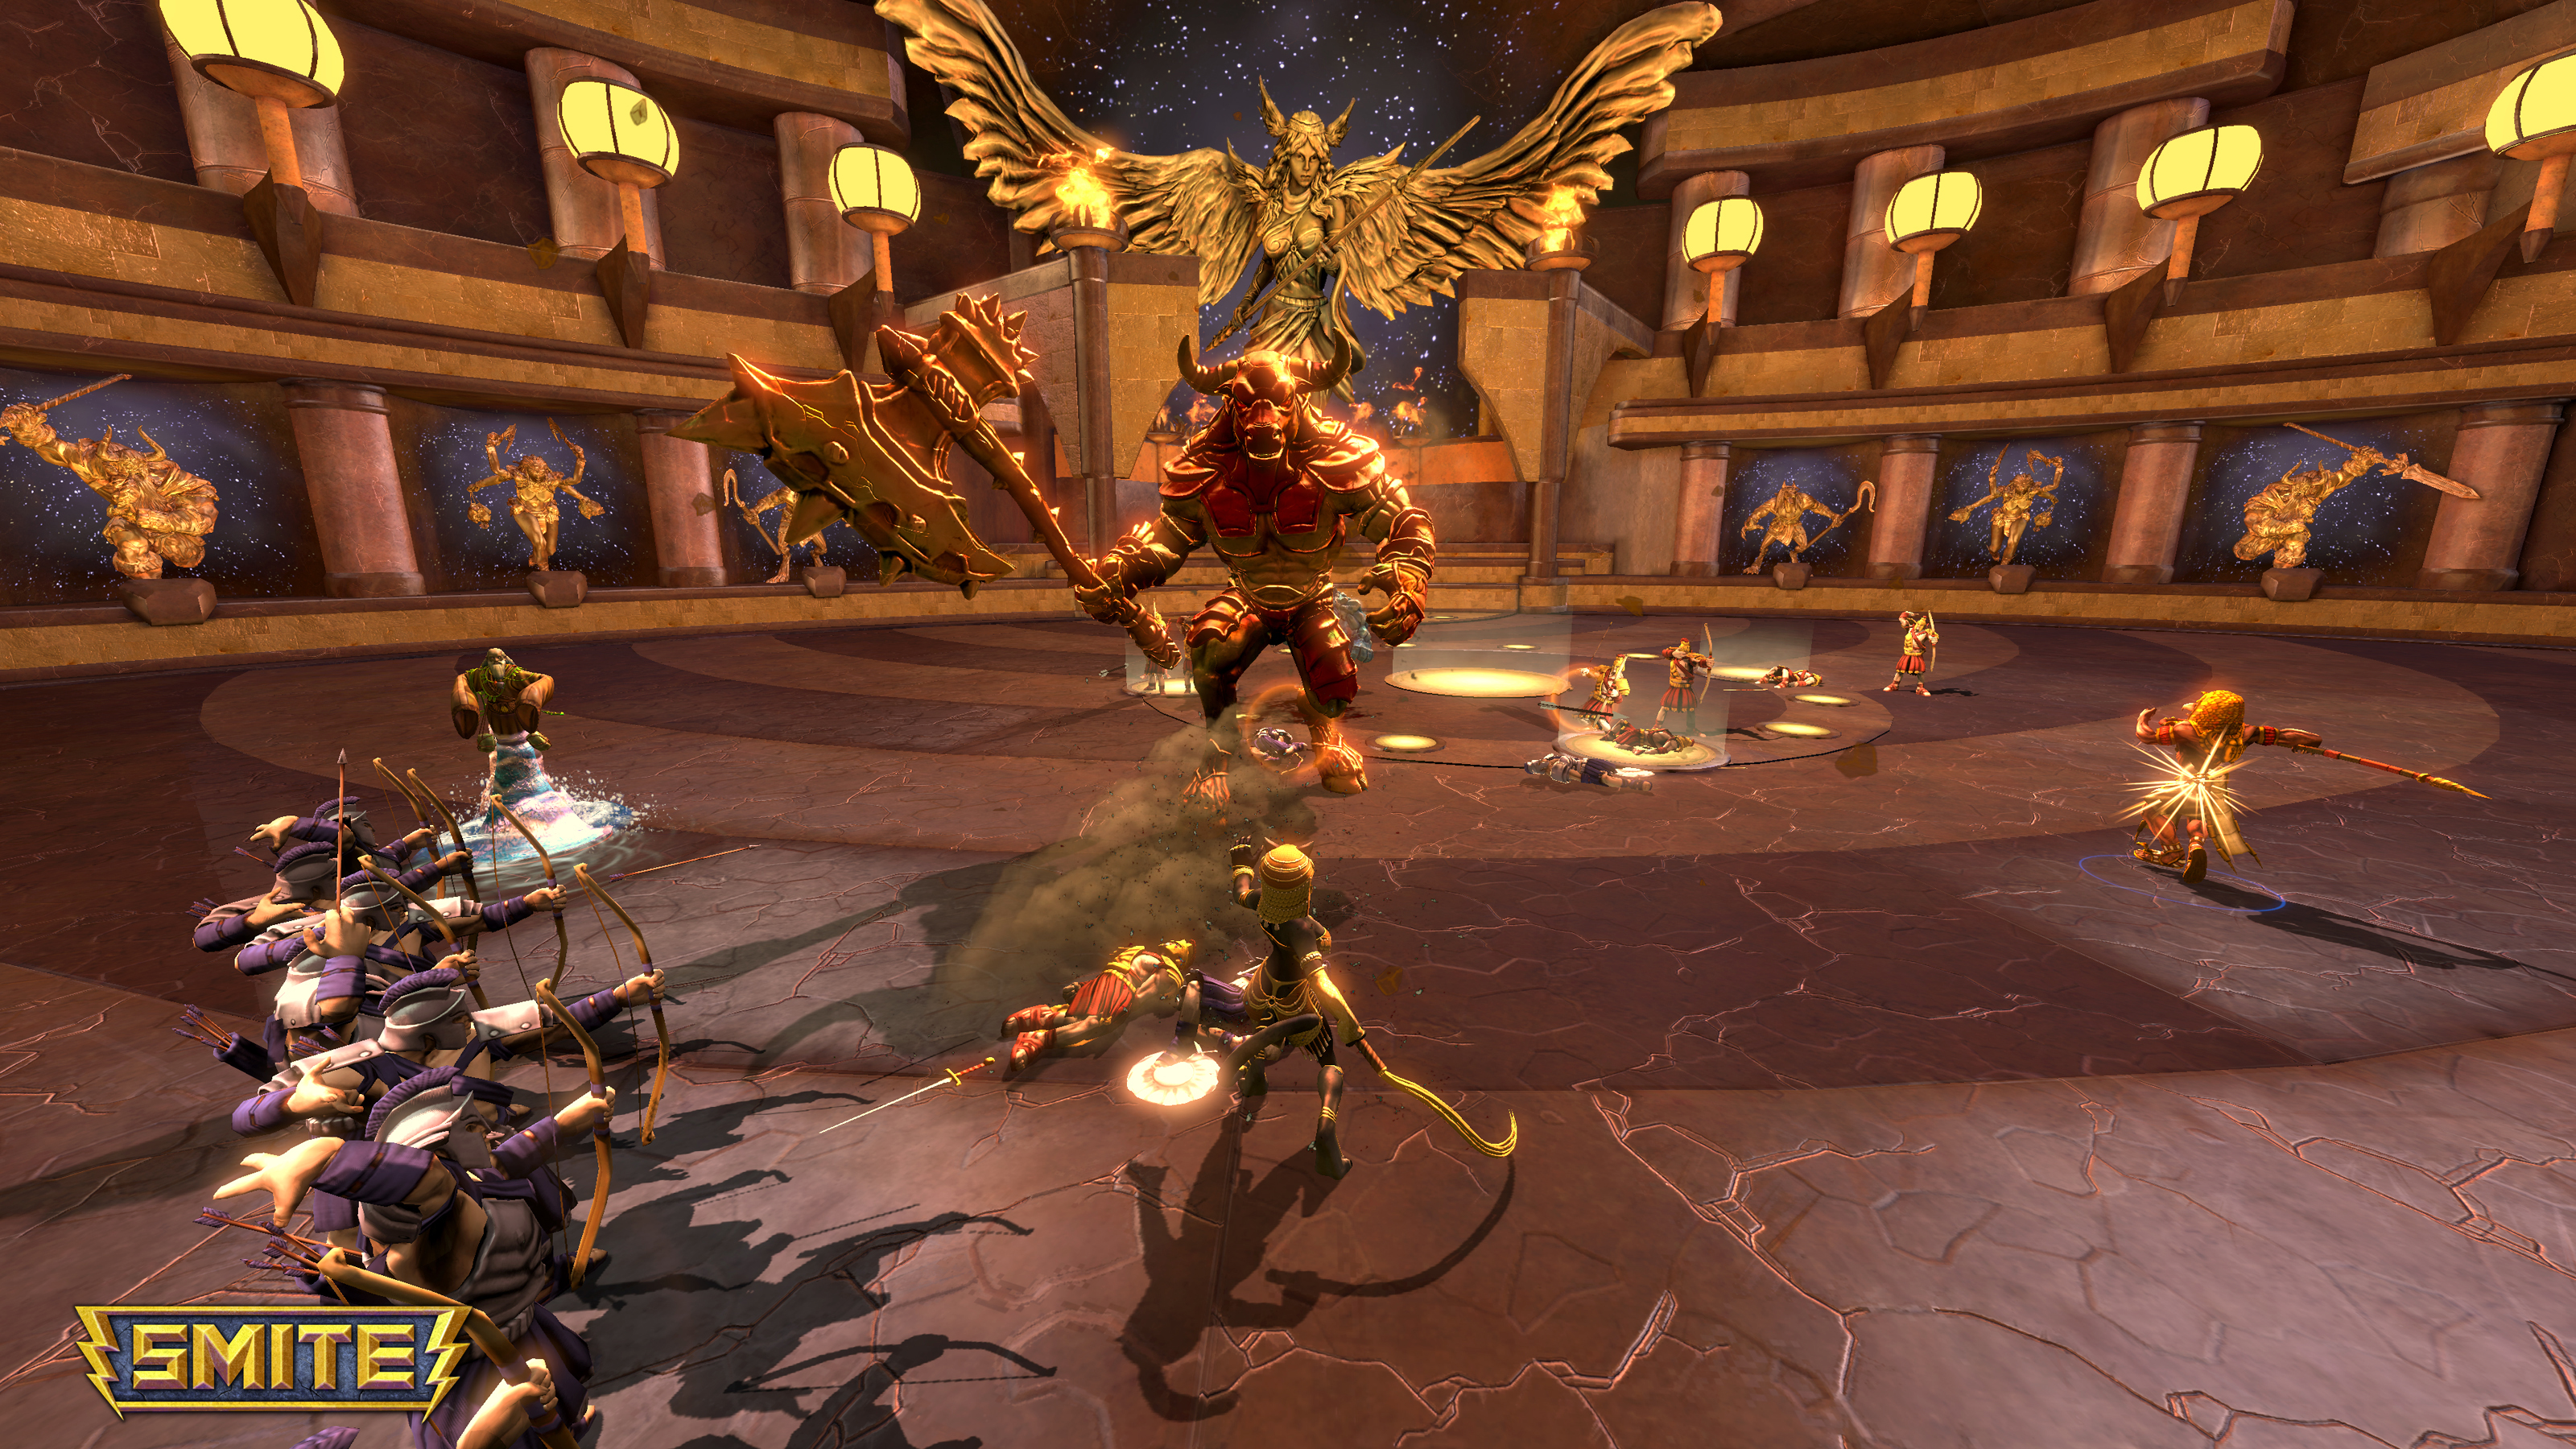 Smite Officially Launches On Xbox One